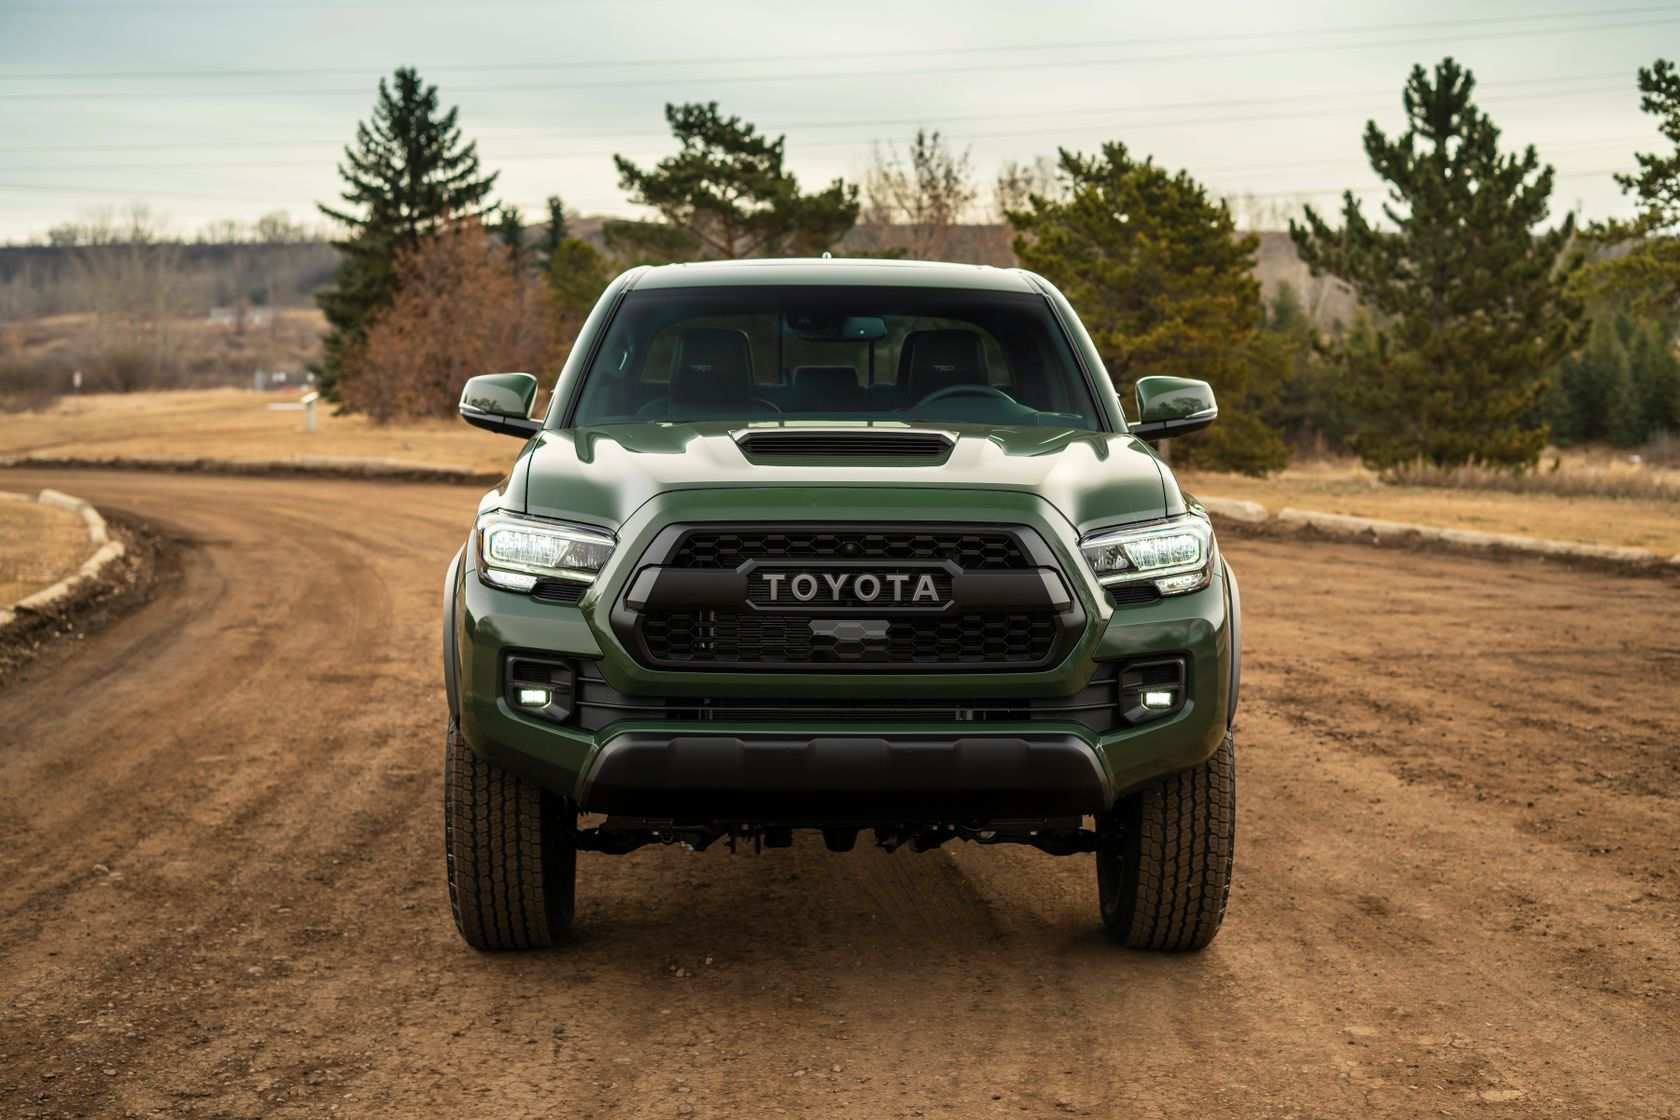 98 Best 2020 Toyota Tacoma Review And Release Date